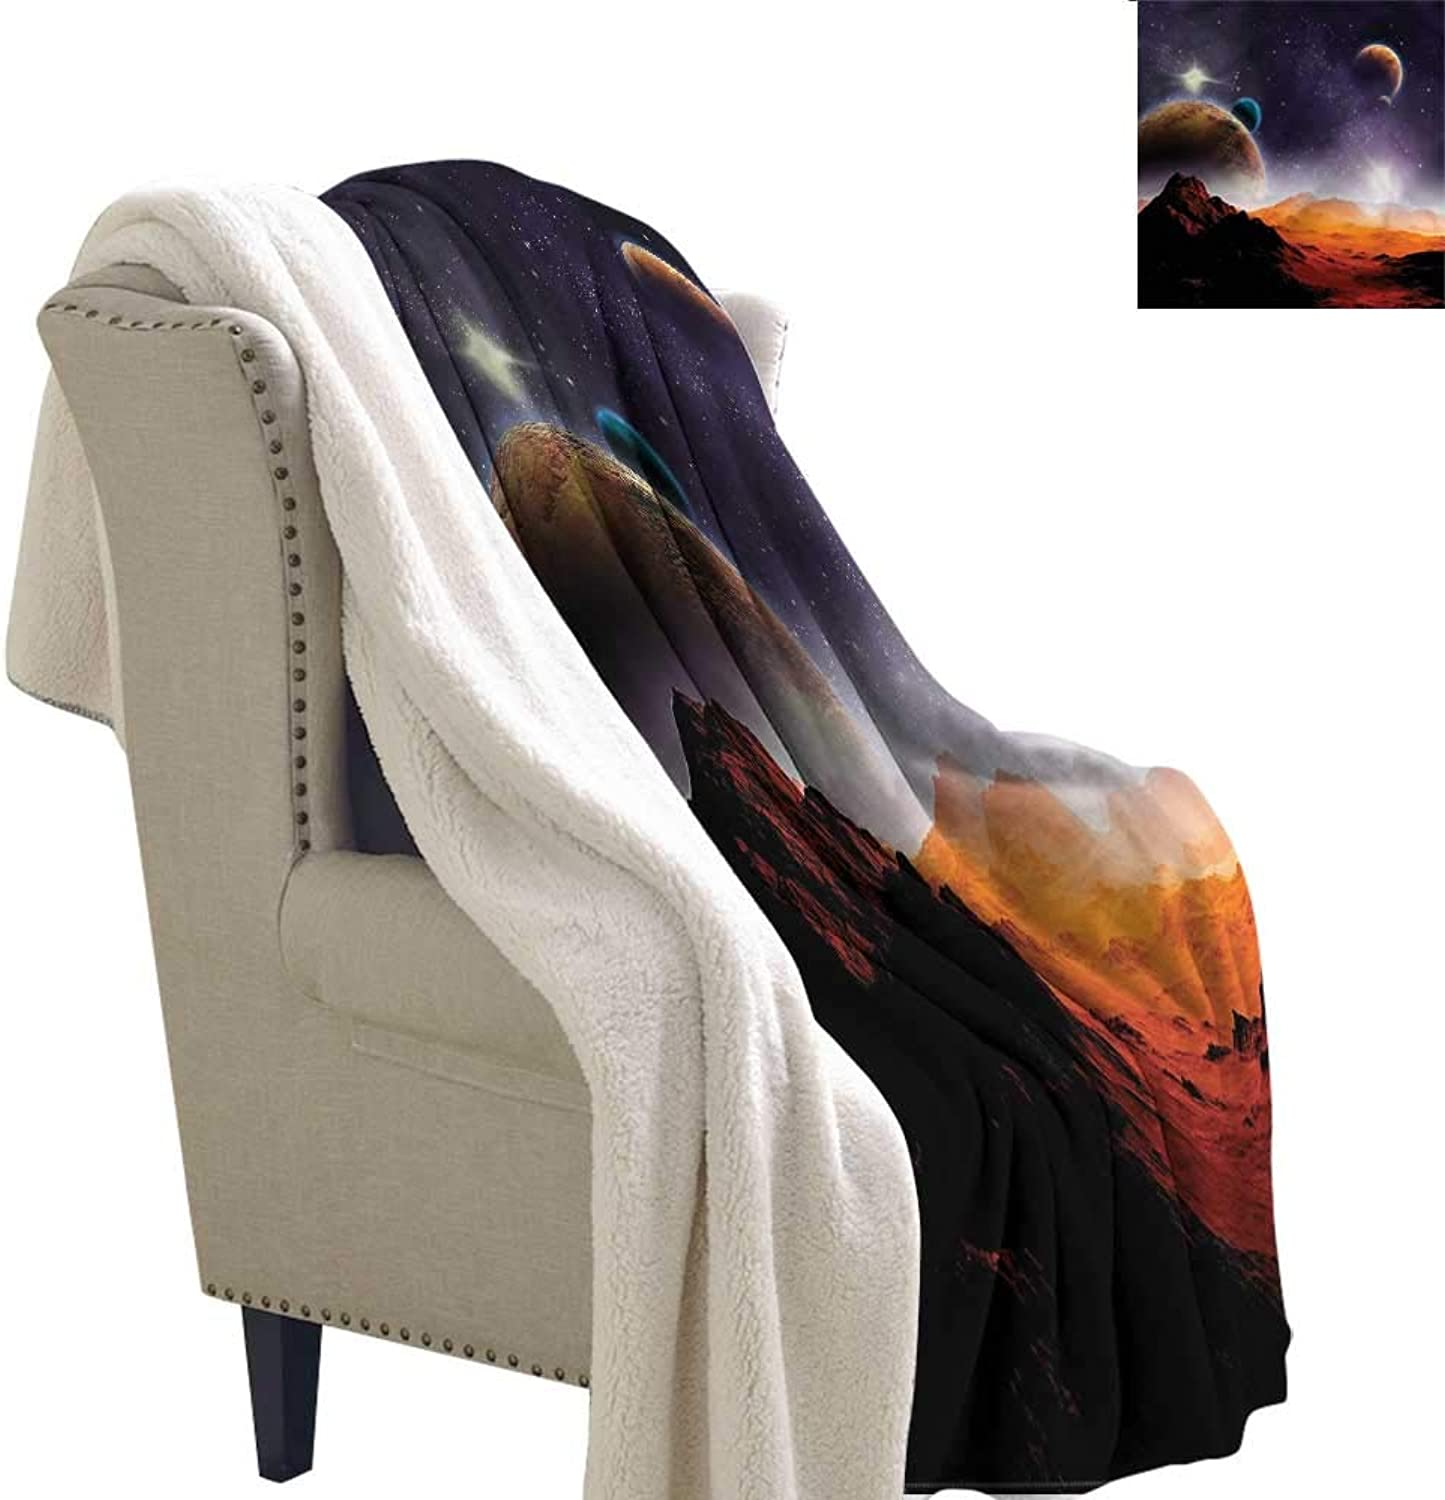 AndyTours Winter Quilt Galaxy Solar Sky Orbit Comet Reversible Blanket for Bed and Couch W59 x L31